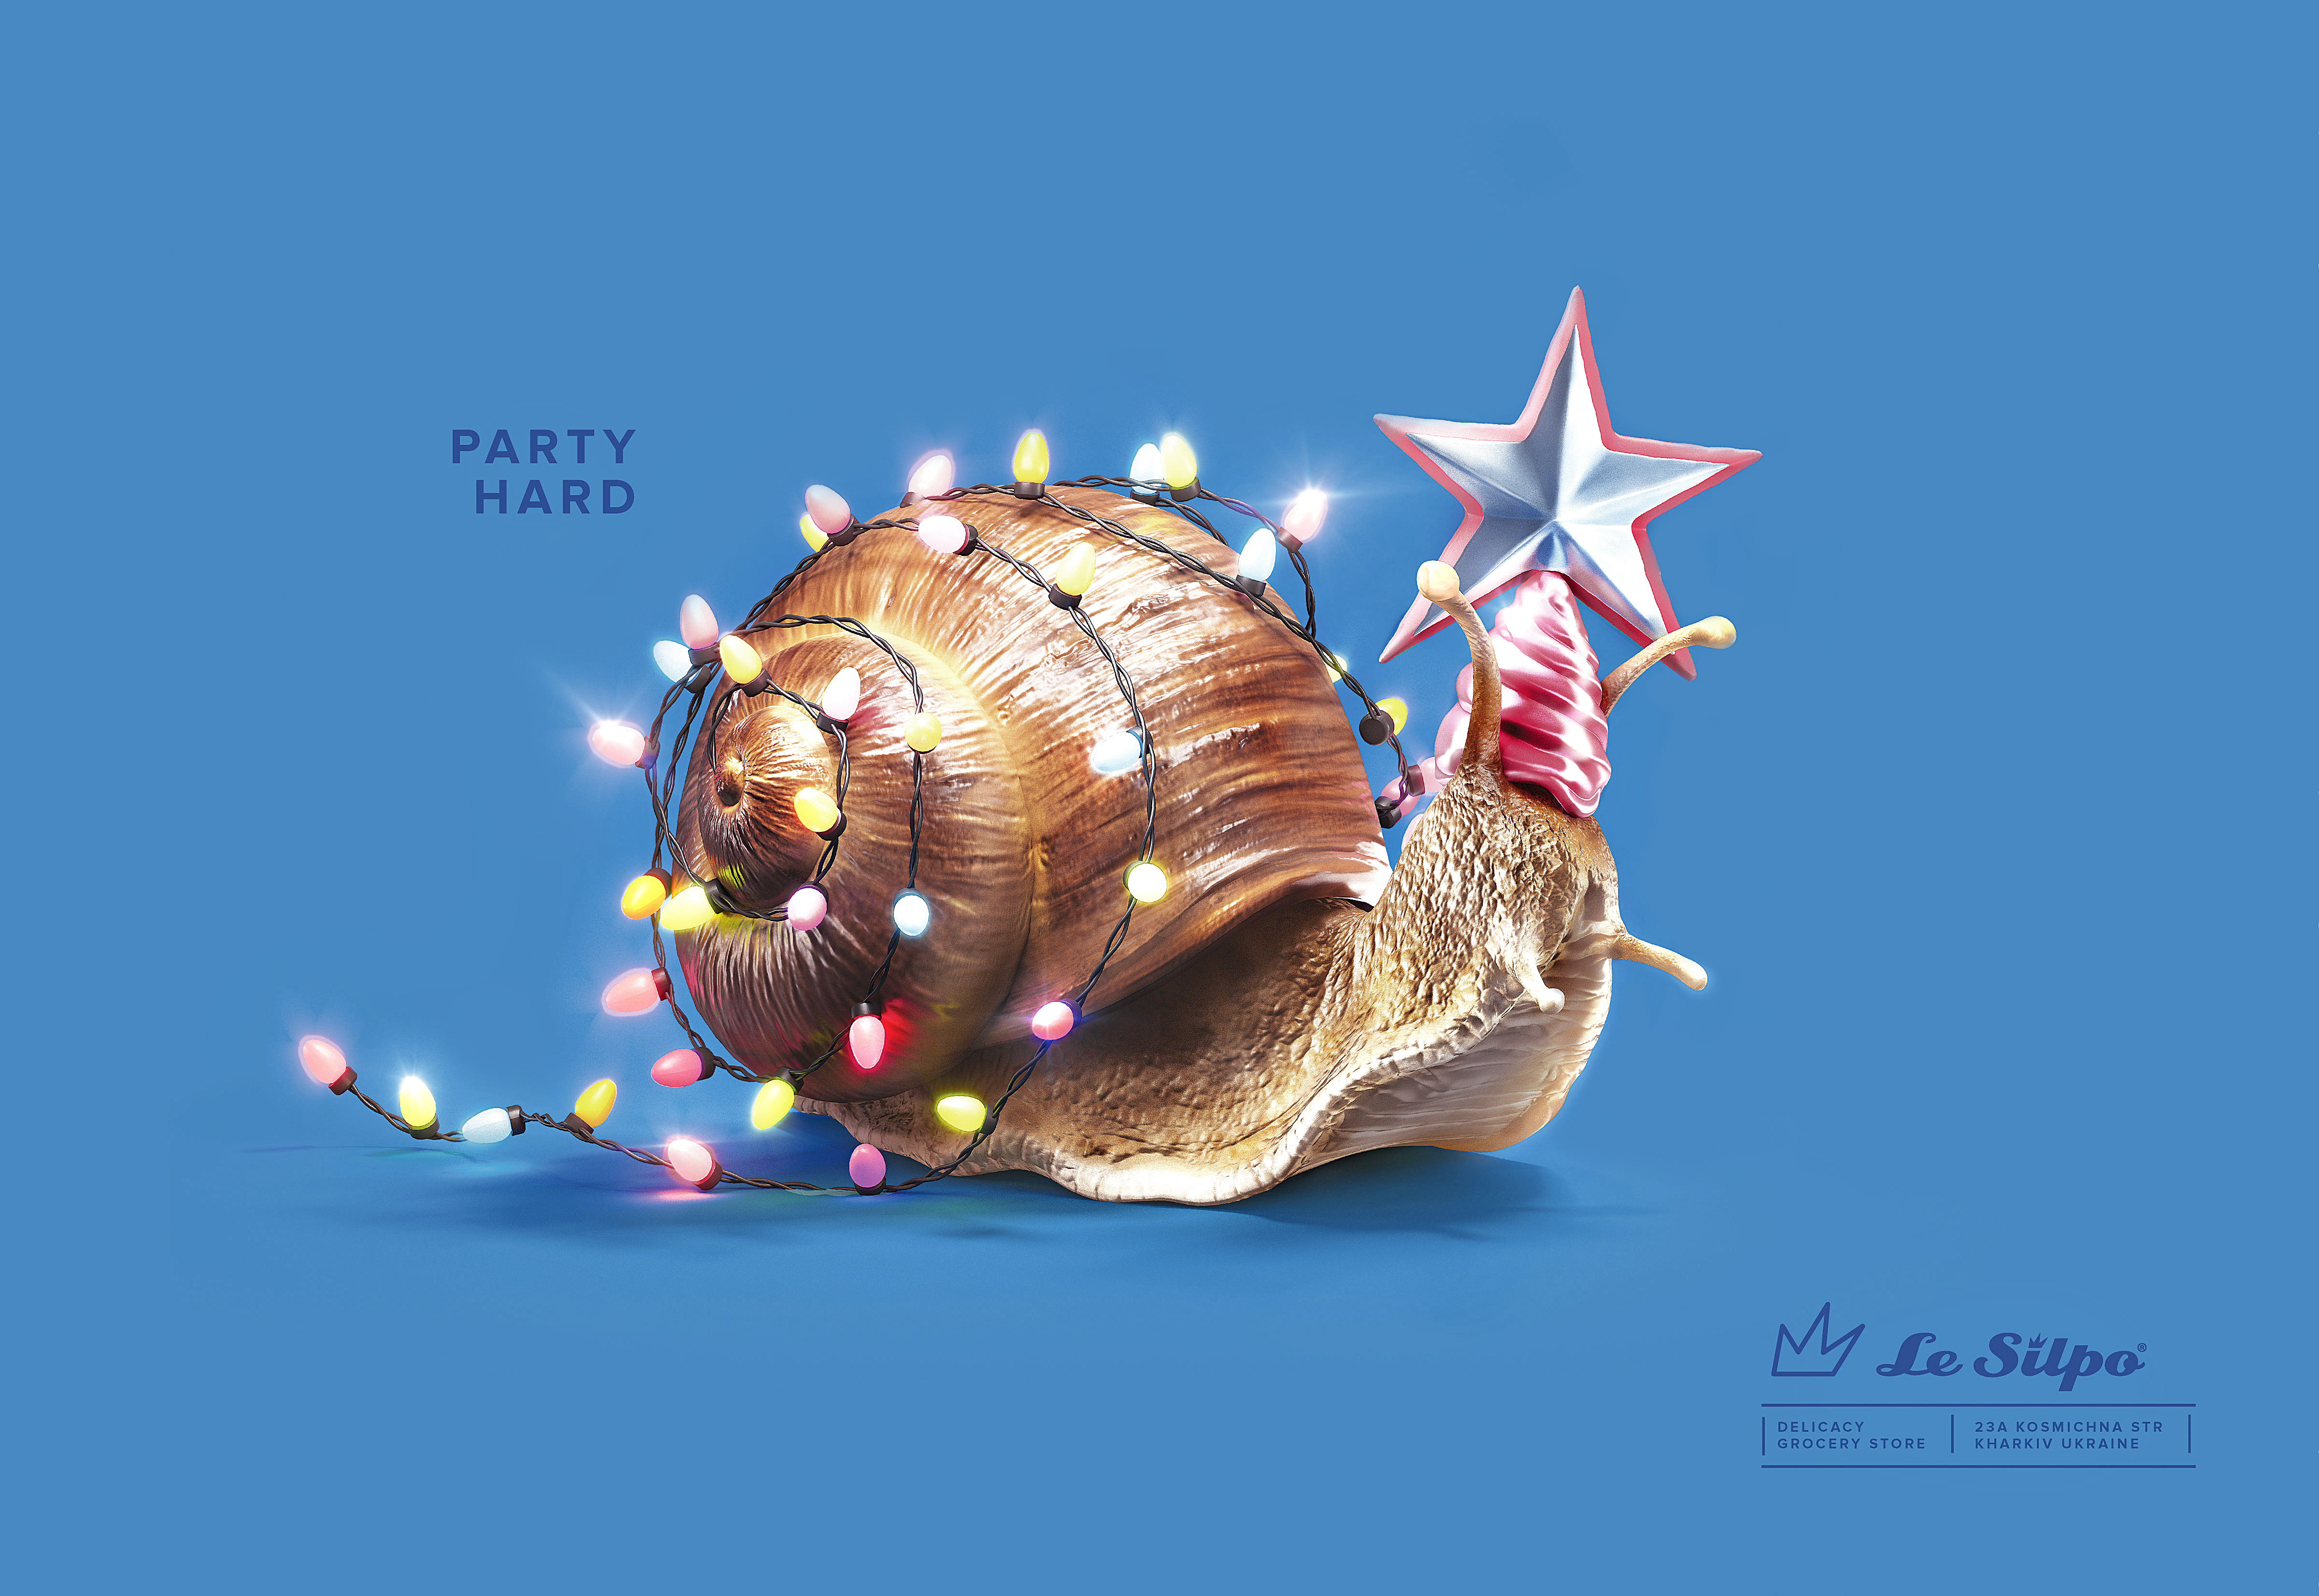 Party Hard. Snail